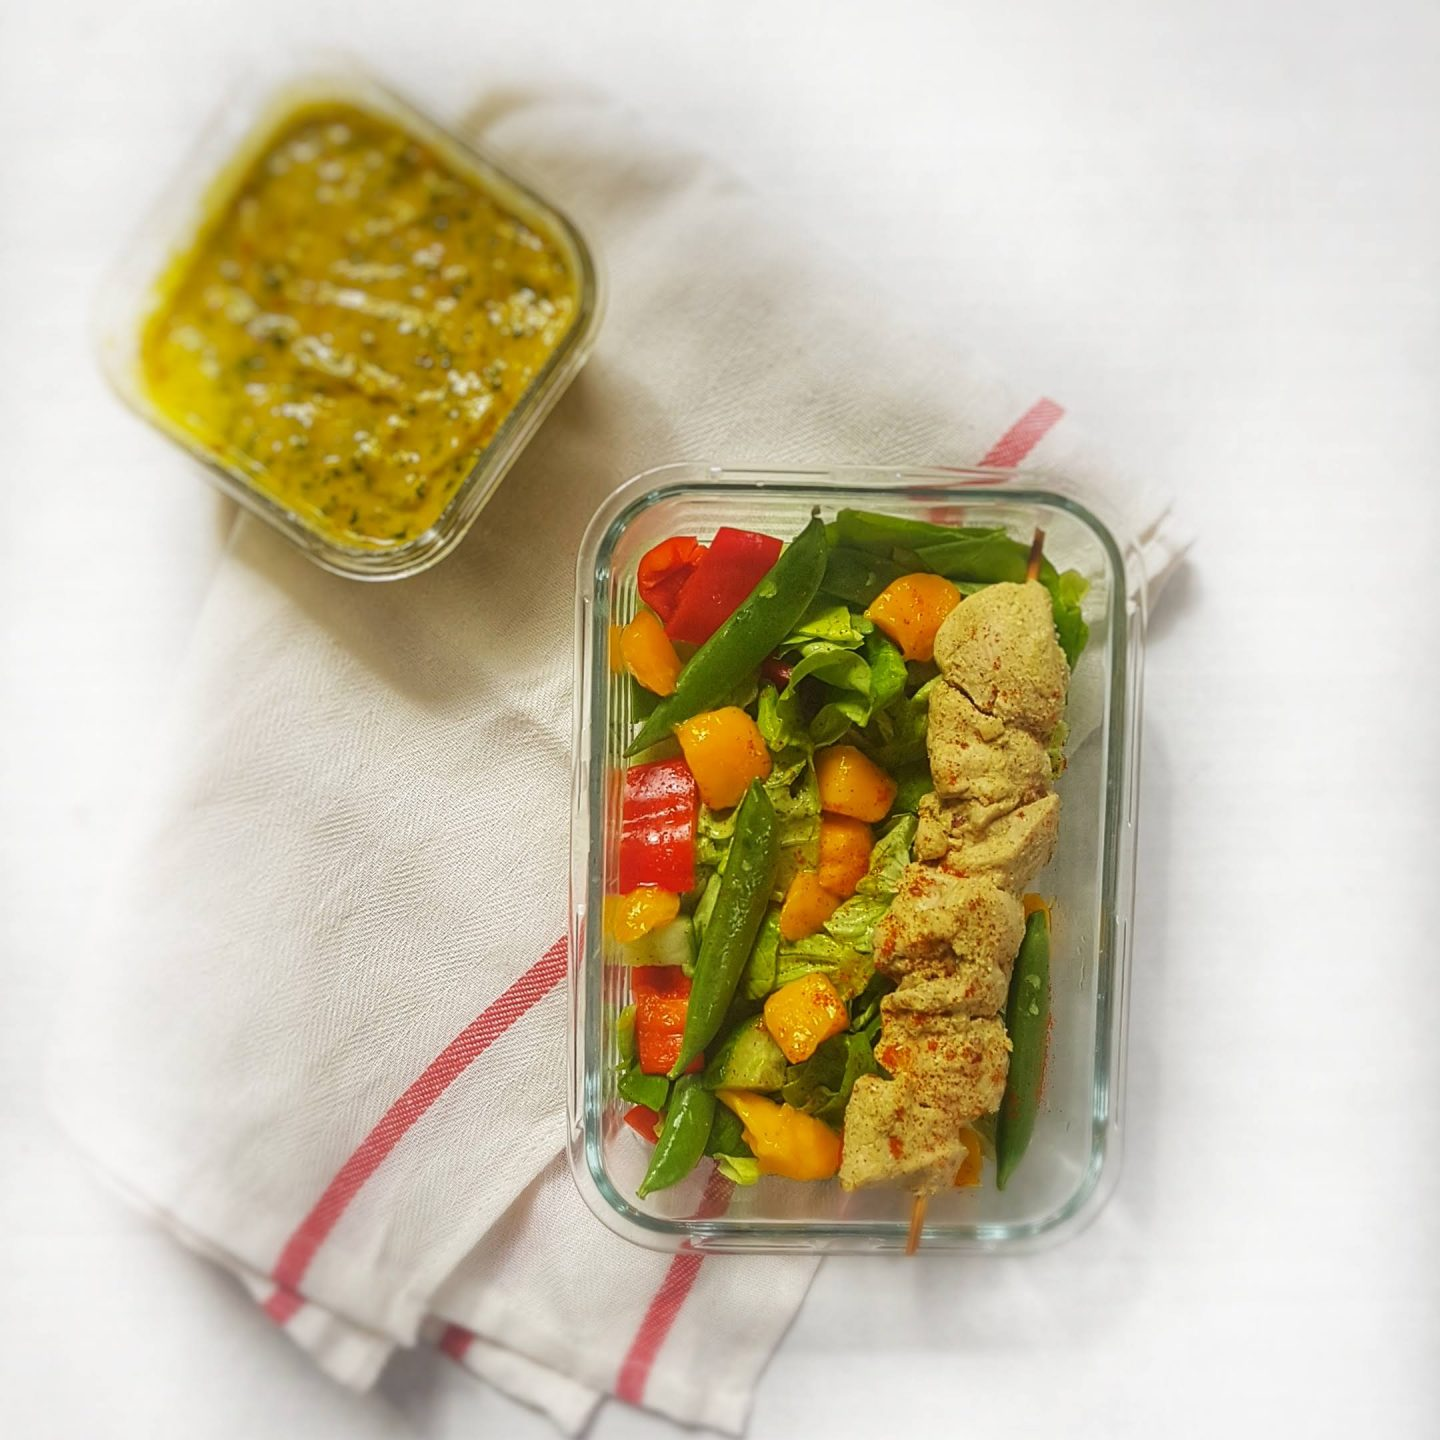 mango coconut chili chicken meal prep salad